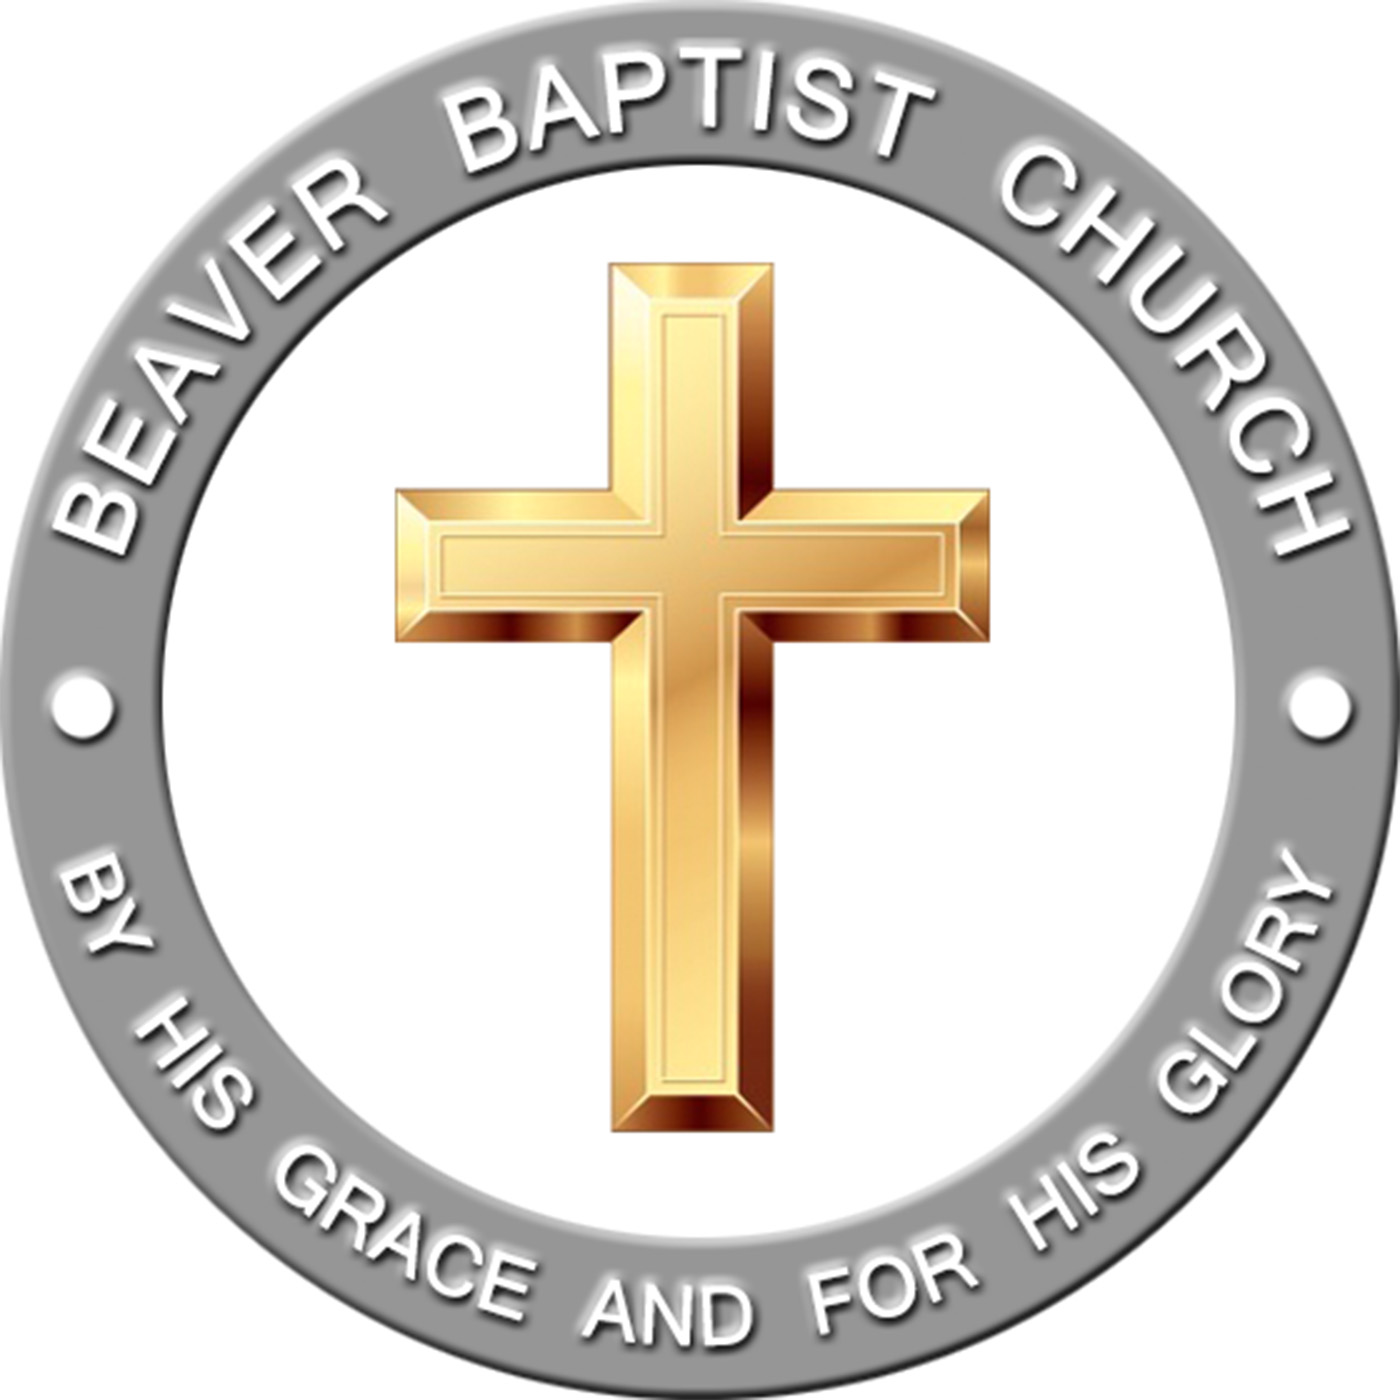 Beaver Baptist Church